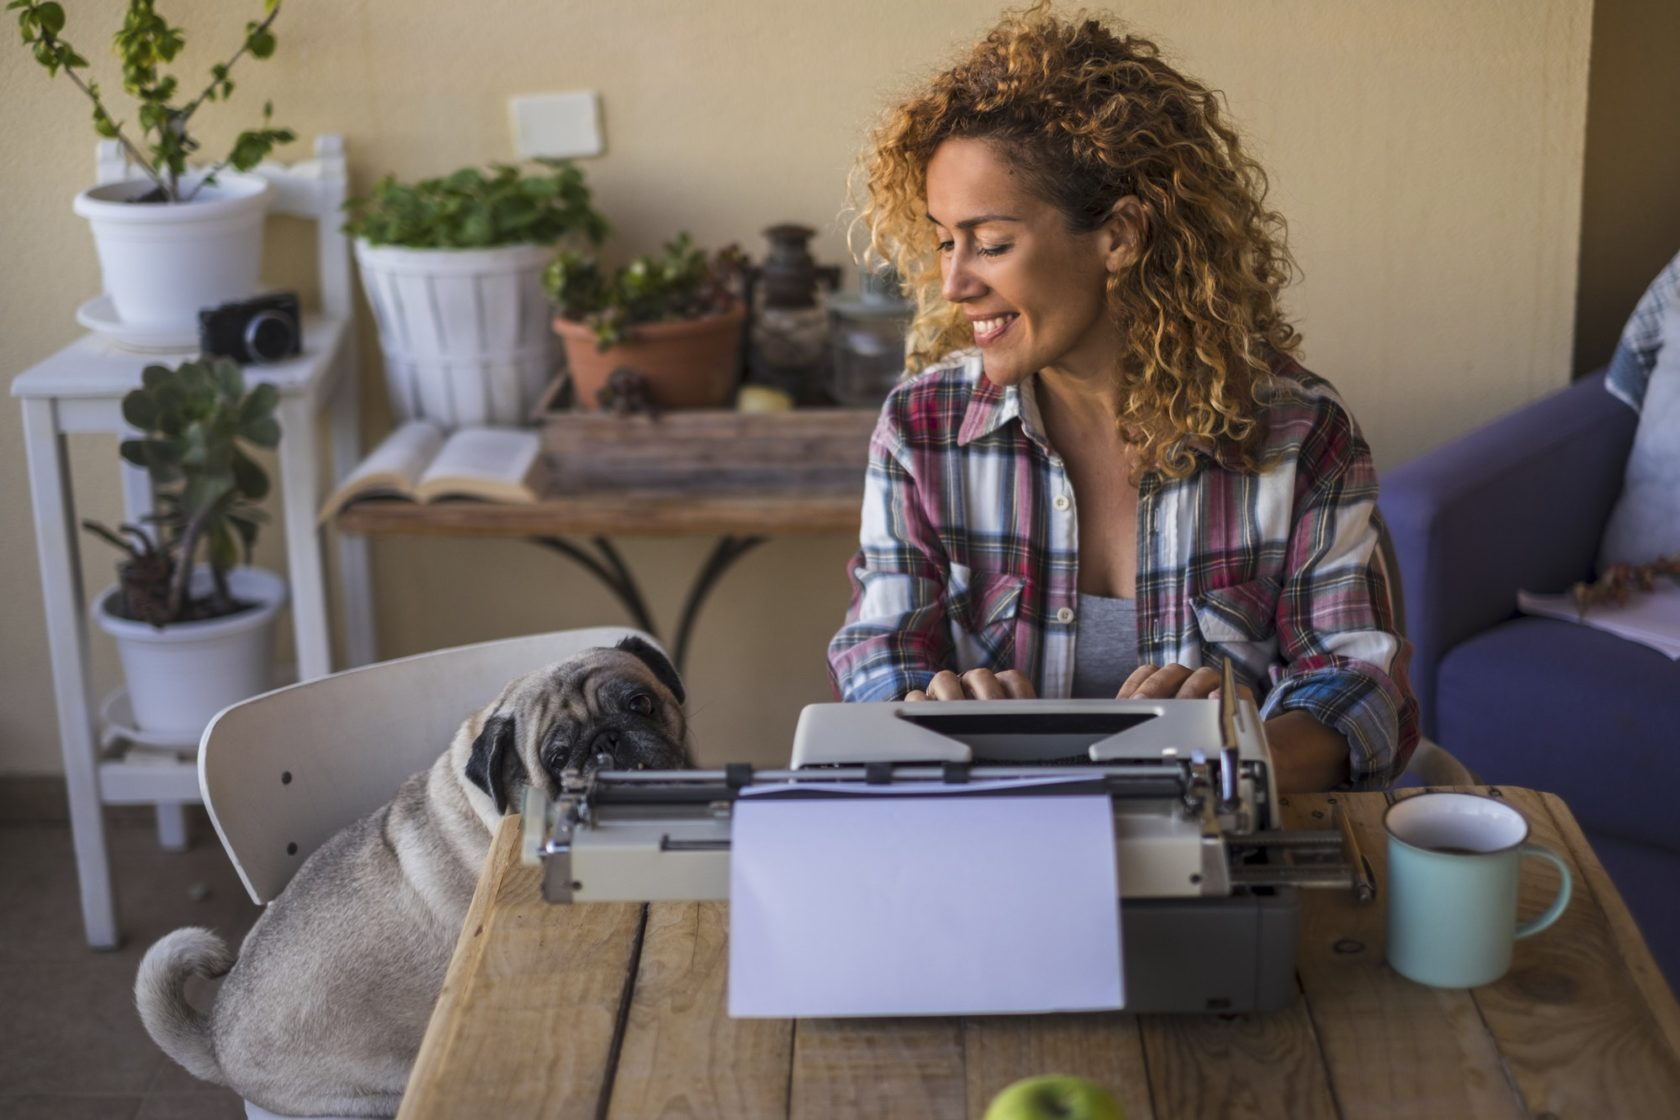 Middle age pretty caucasian woman use an old typewriter to write a blog or book